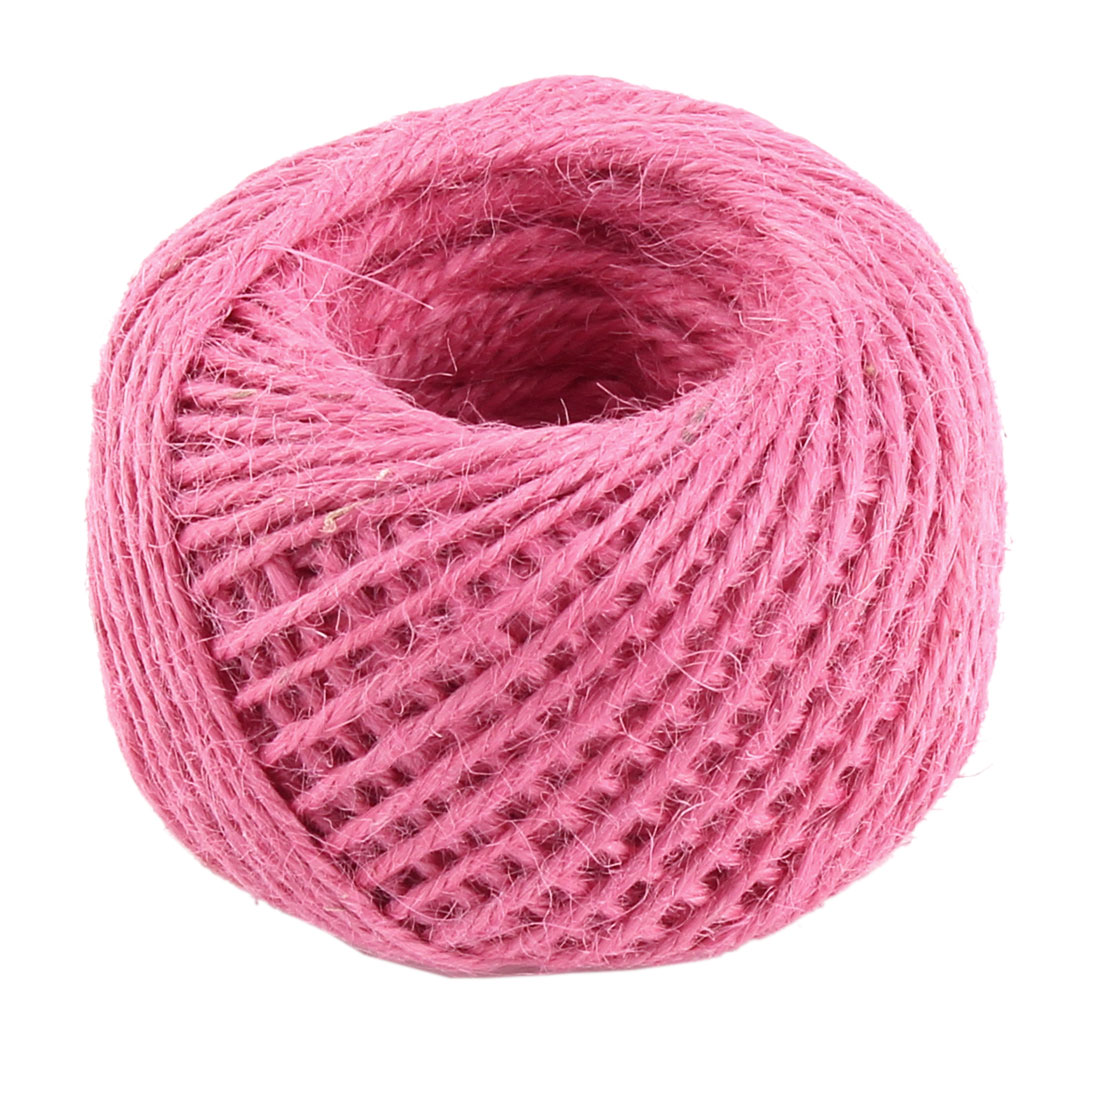 Jute Burlap Ribbon Twine Rope Cord String Wrap Roll Dark Pink 2mm Dia 50m Length